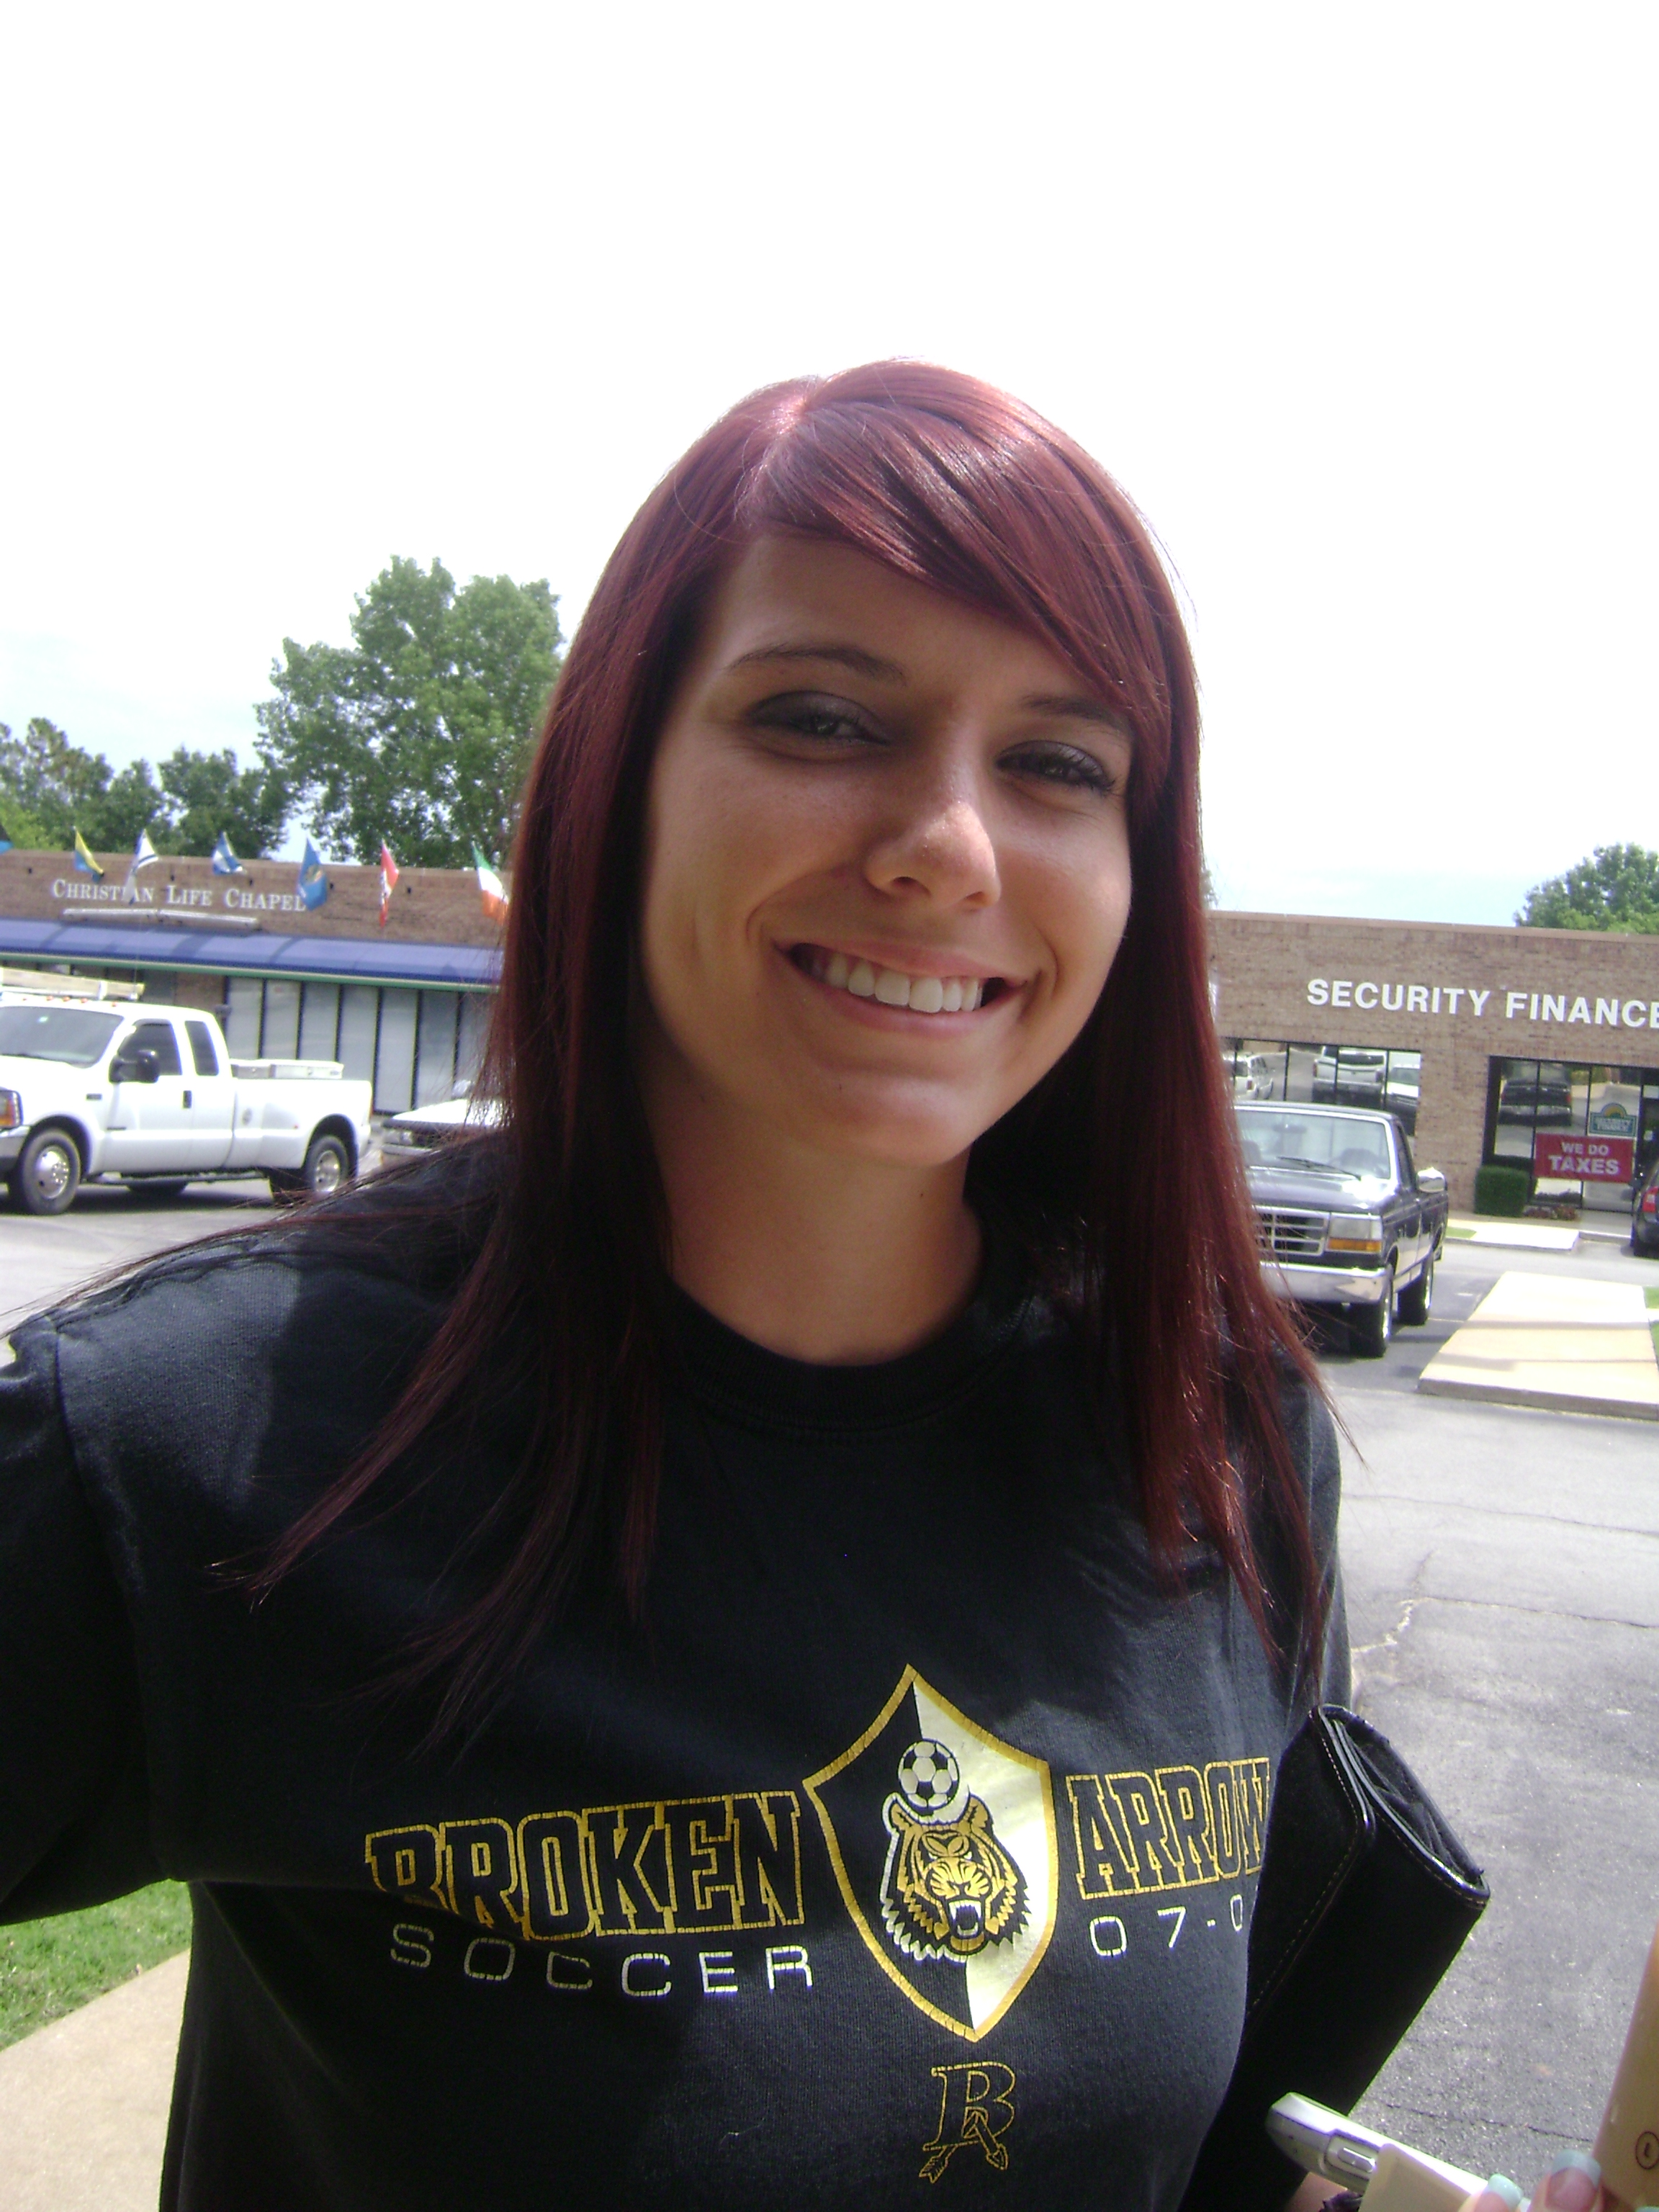 Hair Color Jordan (4)